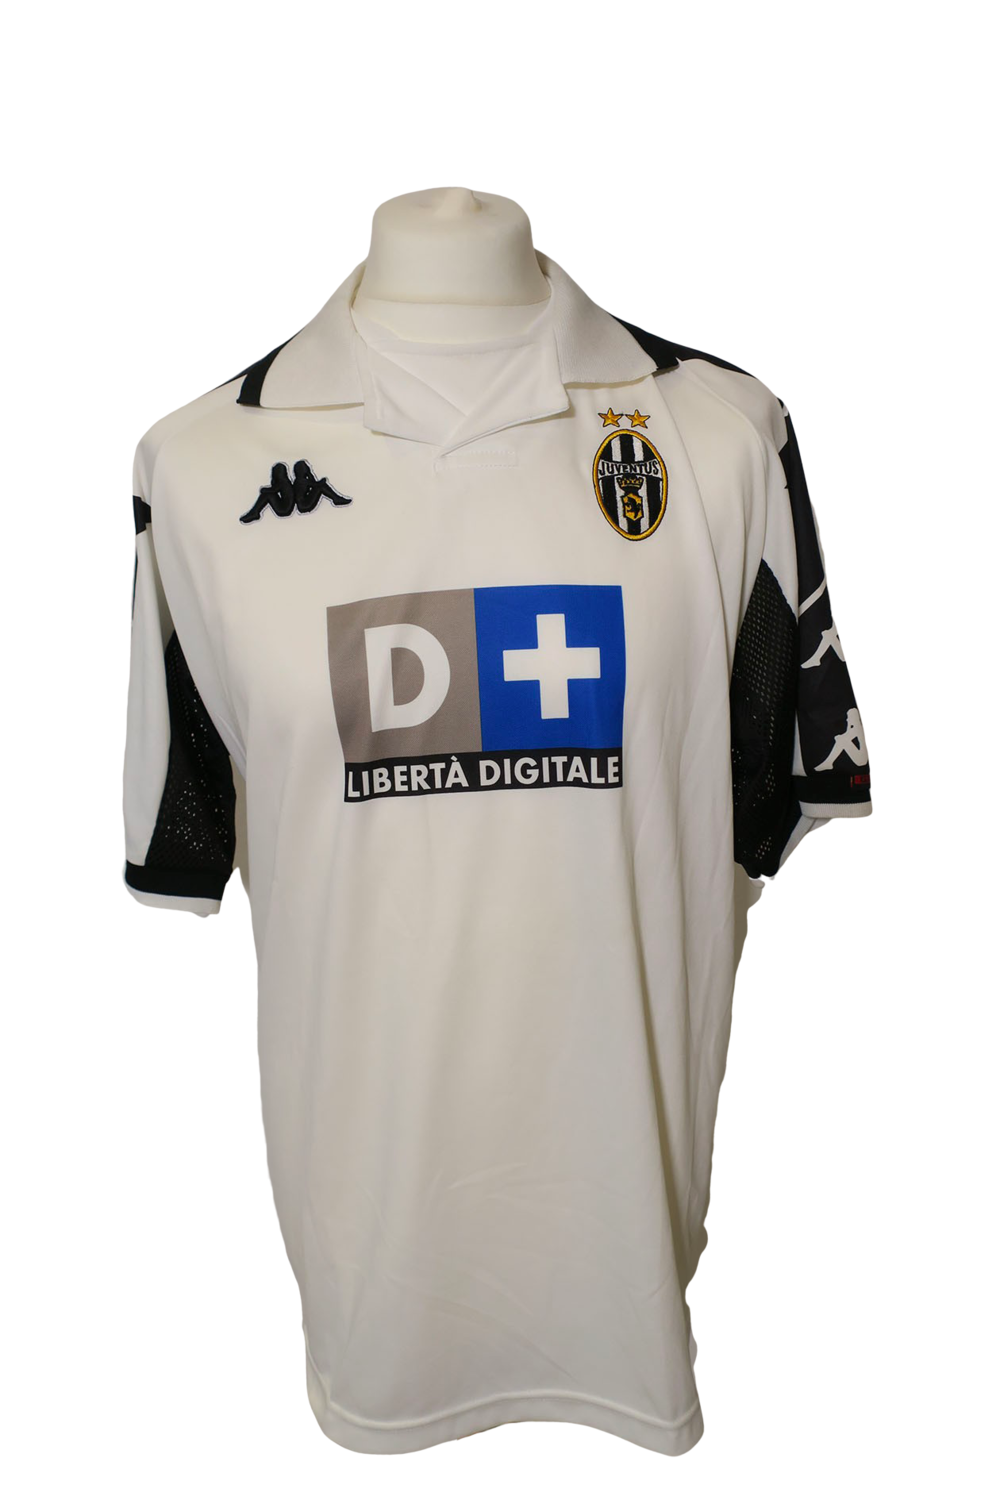 Maillot Juventus Home 1999/00 MINT